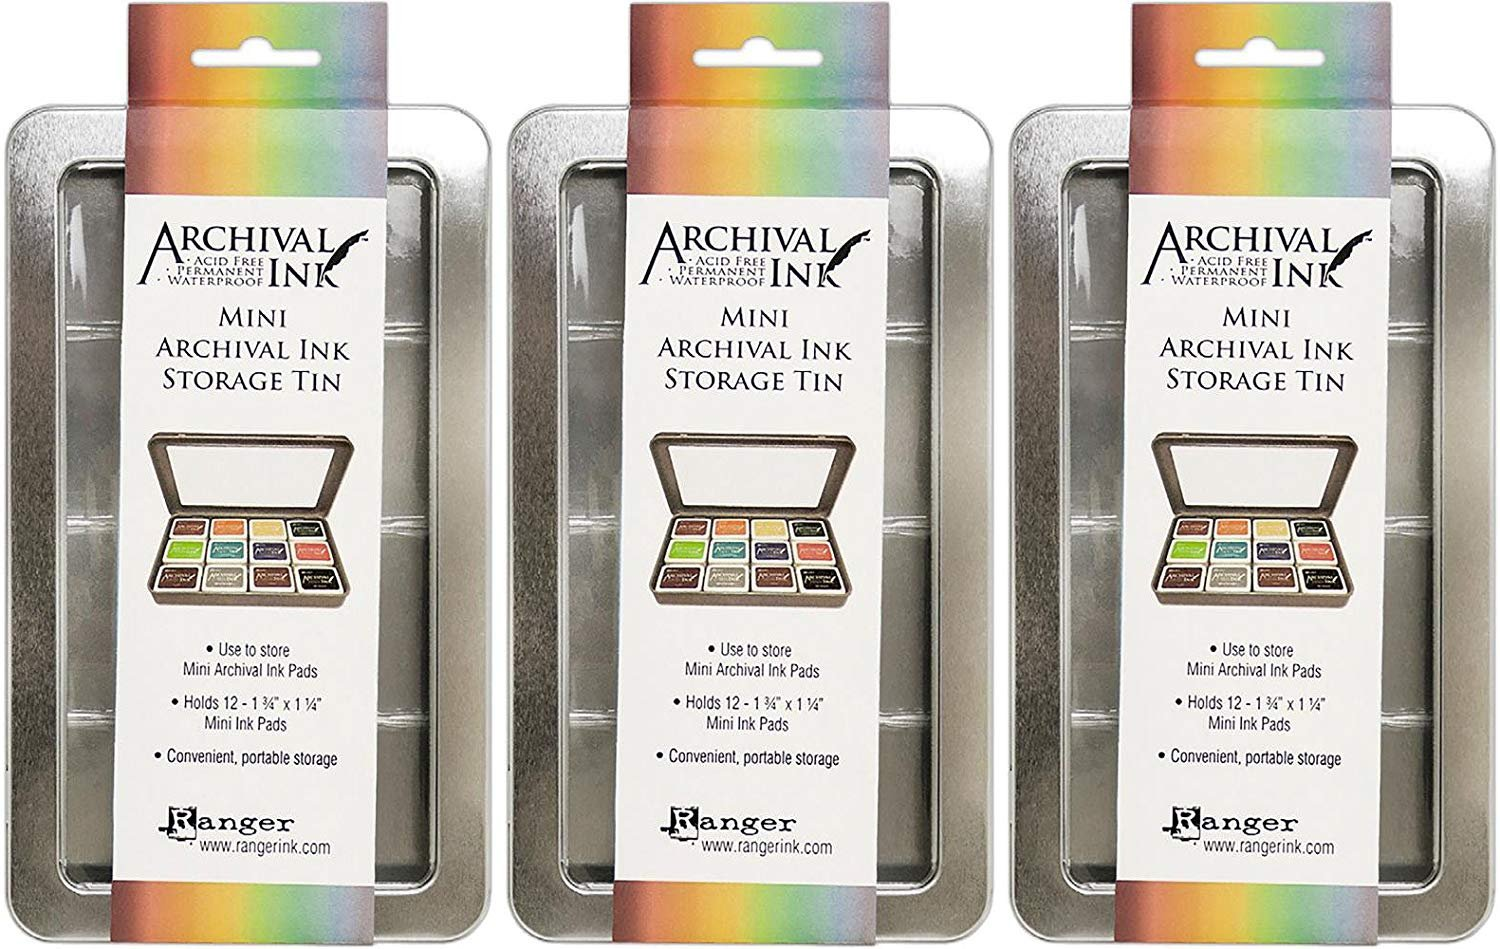 Ranger Mini Archival Ink Storage Tins - Pack of 3 Tins